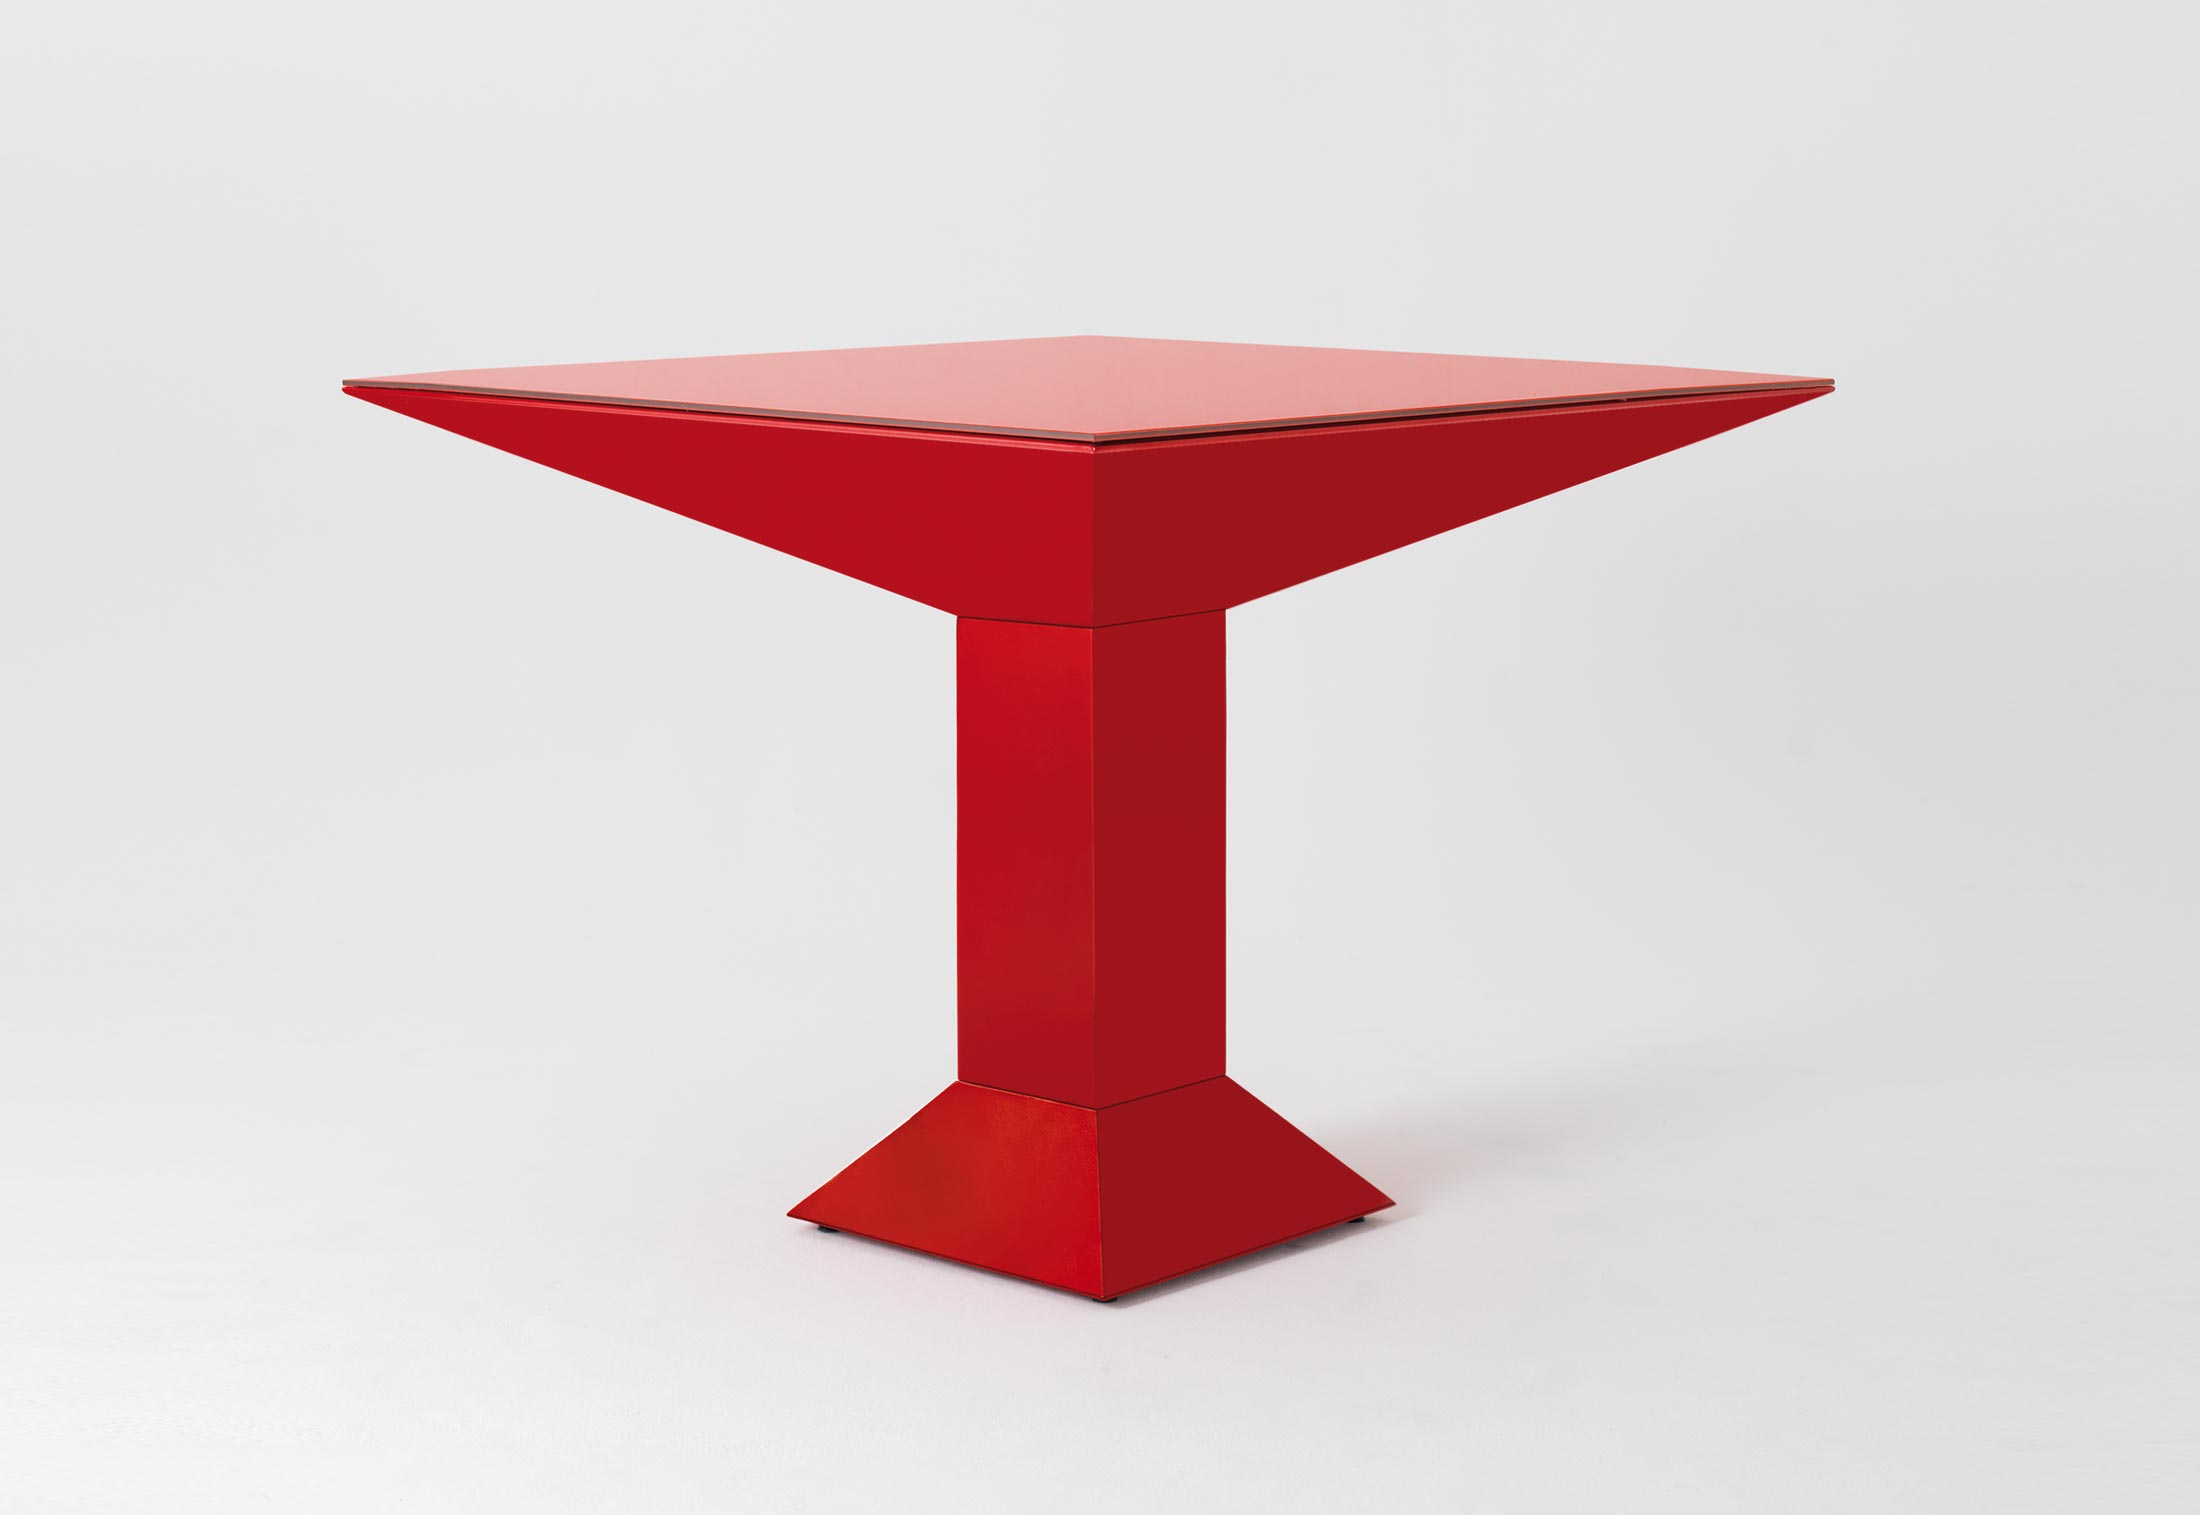 Mettsass Dining Table by Ettore Sottsass for BD Barcelona Design